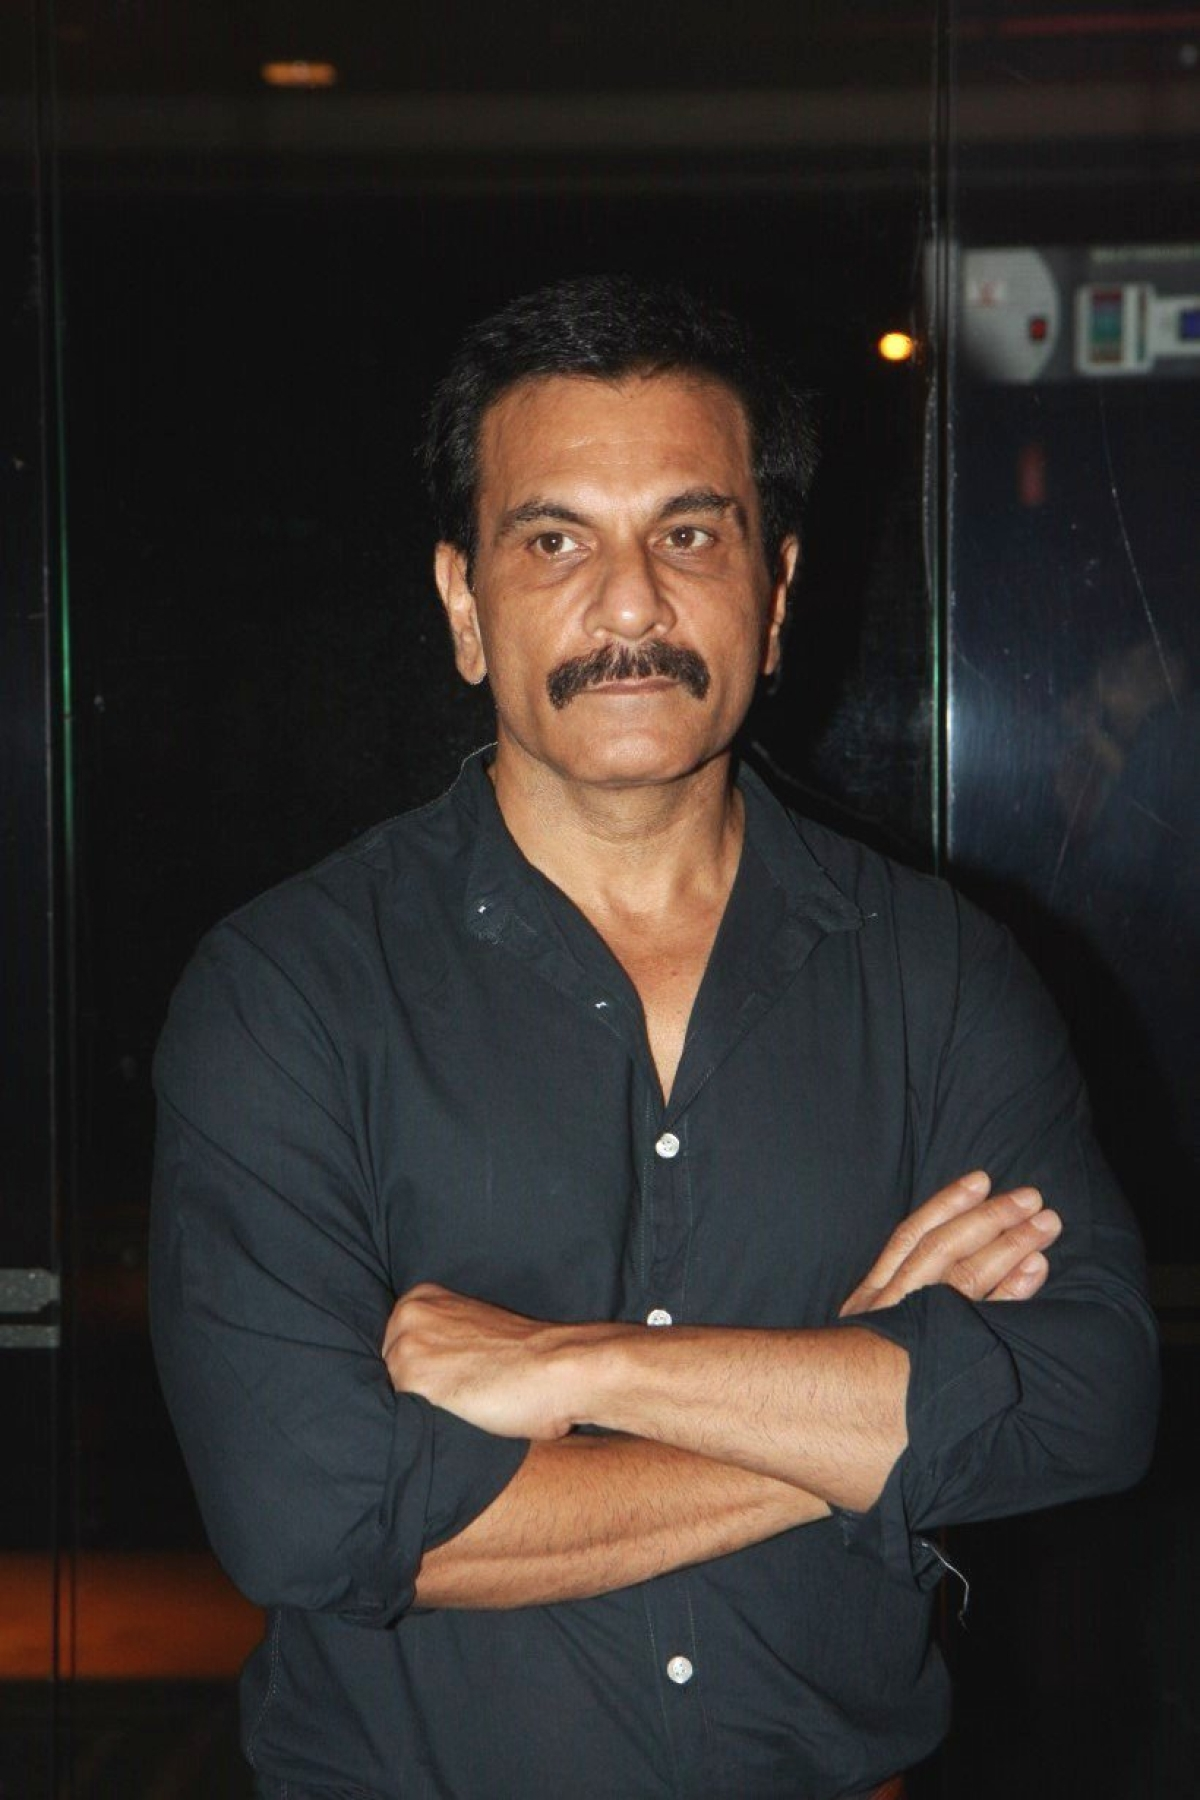 Pawan Malhotra to play investigating officer in 'Weekend'